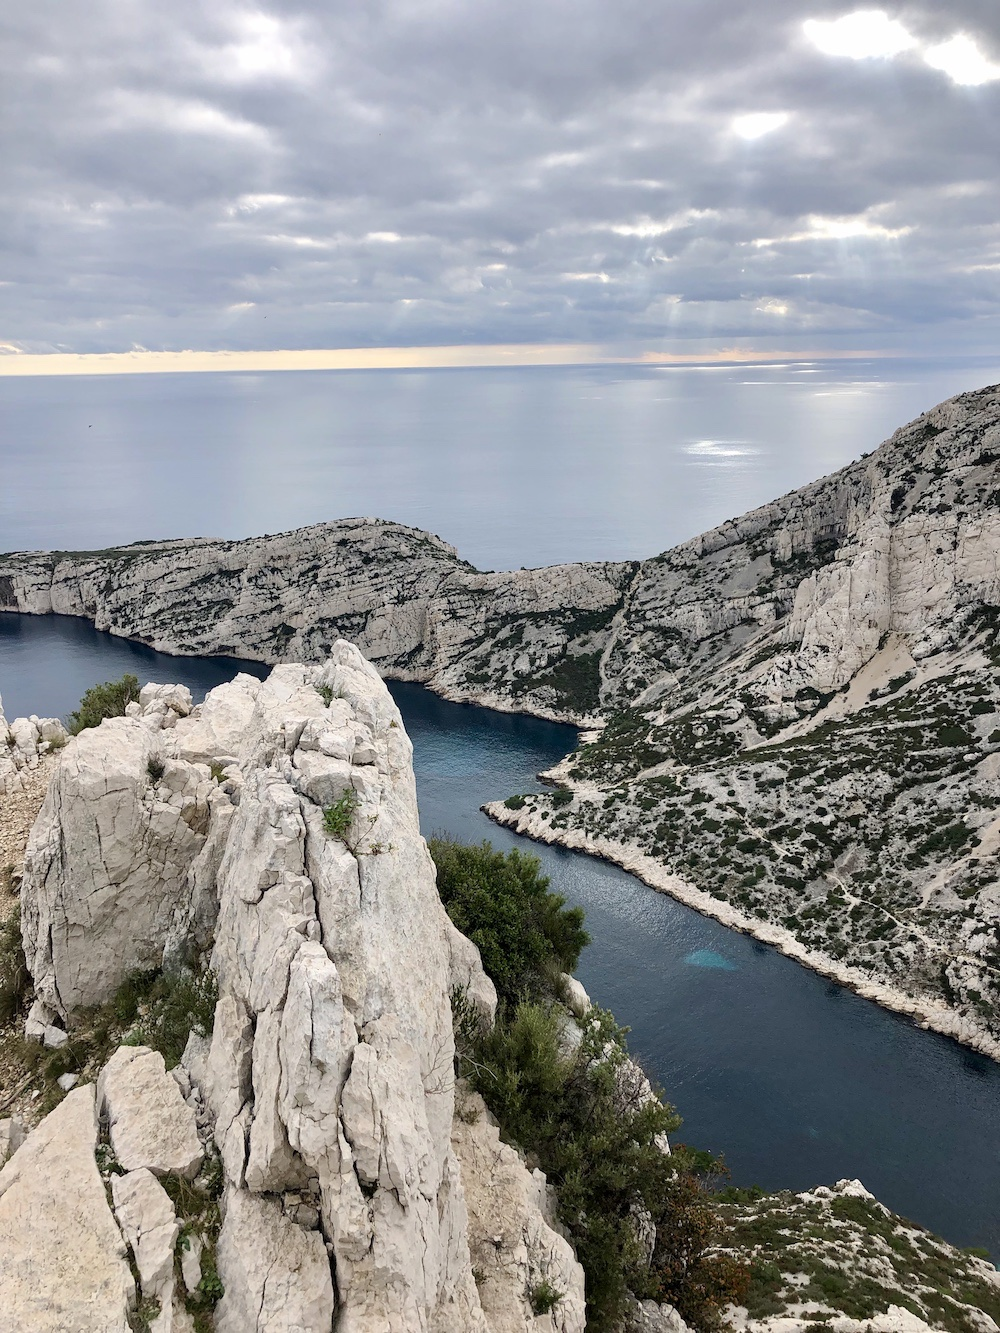 Parc National des Calanques - Mont Puget